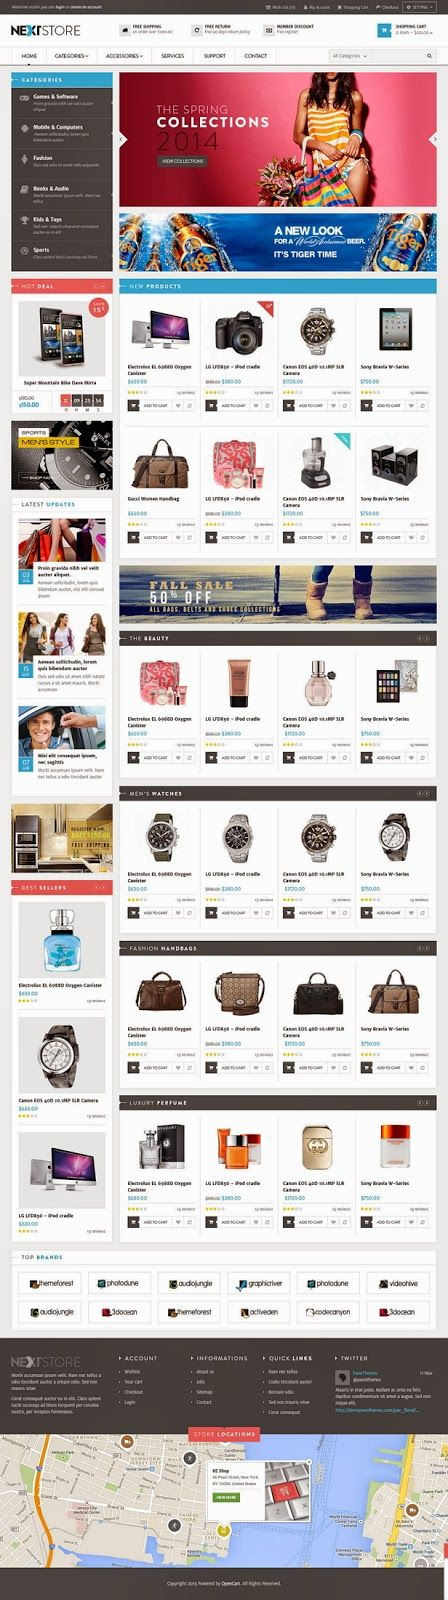 Venus Next Store is a Responsive Magento Template suitable for any kind of Fashion Shop, Hightech Store, Gift Shop, Electronics shop and all kinds of marketplace business that needs a feature rich and beautiful presence online. #eCommerce #webdesign